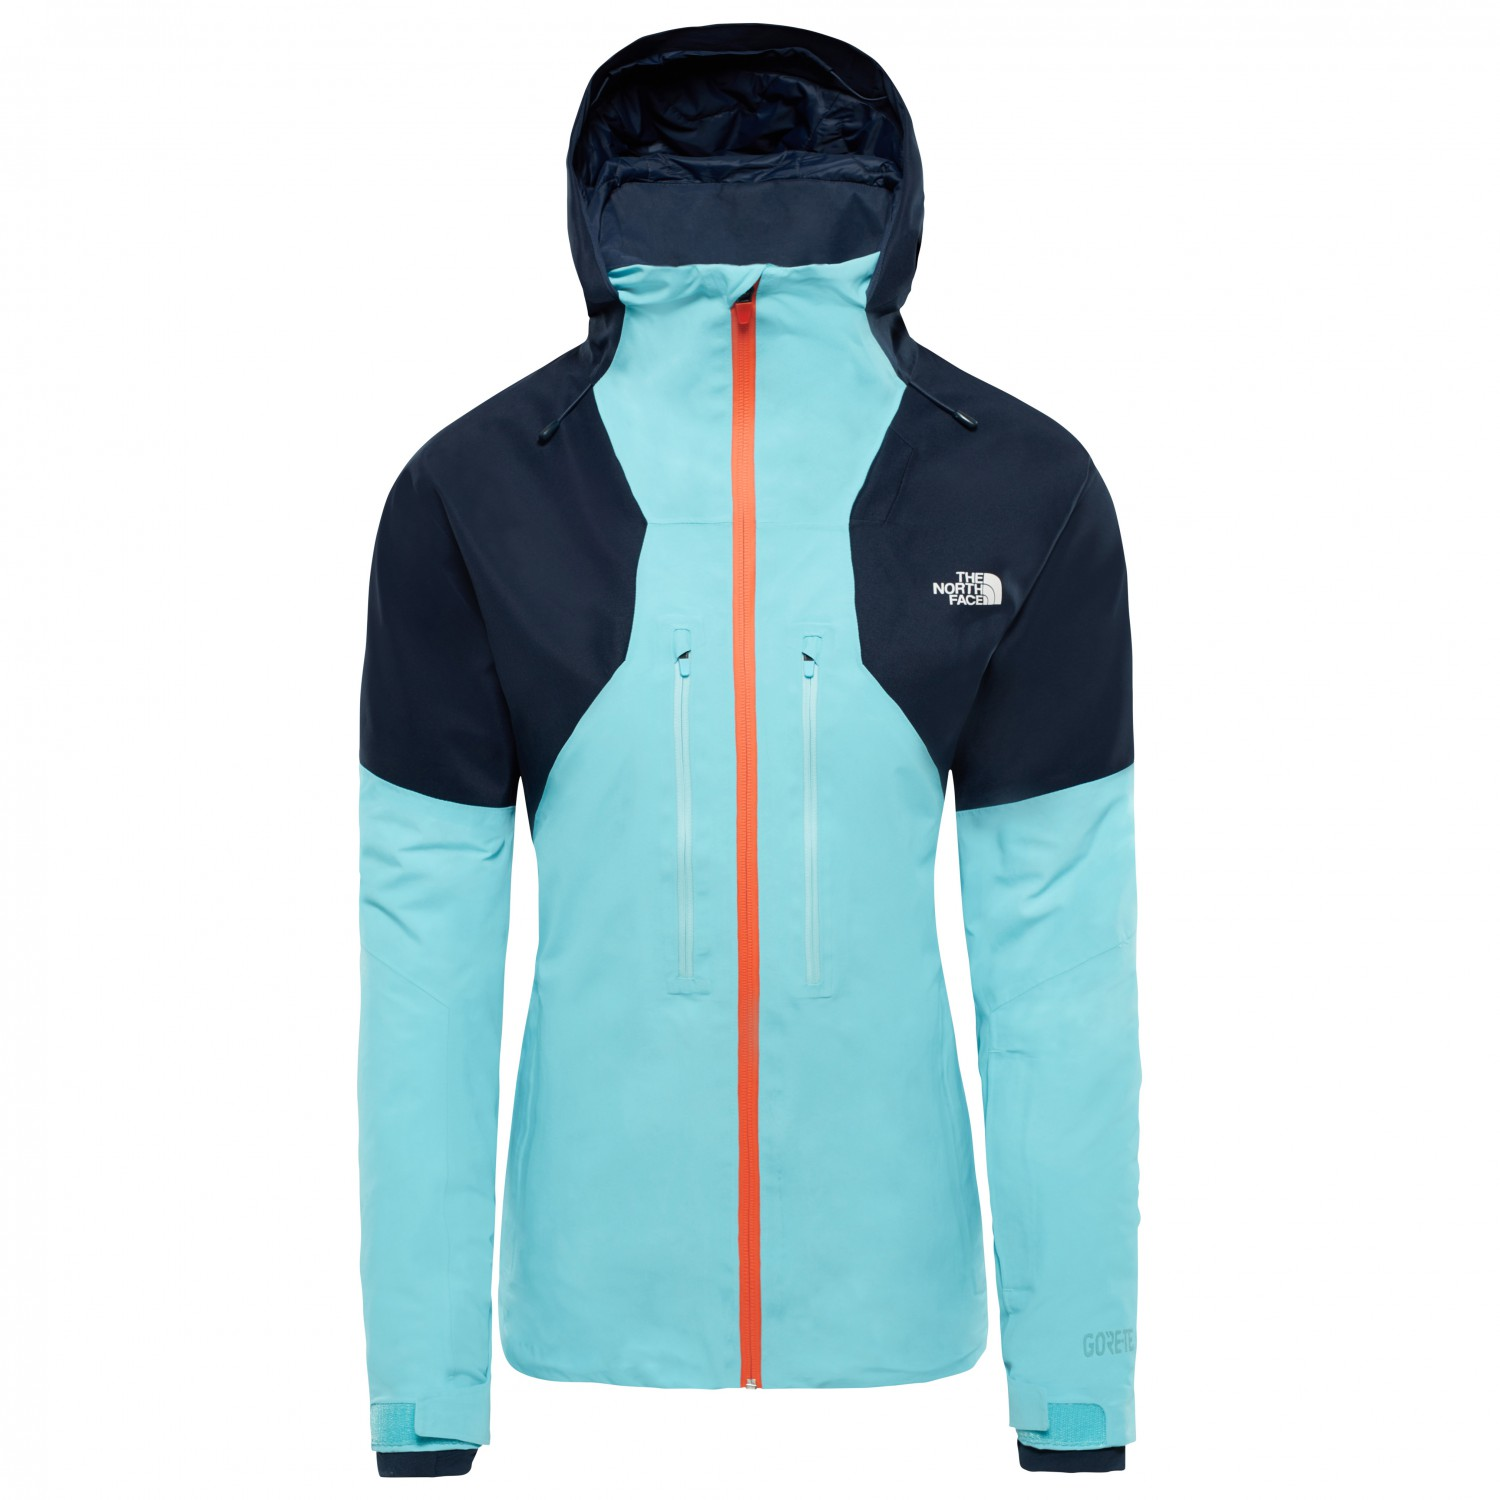 559a9be9c The North Face Powder Guide Jacket - Ski Jacket Women's | Buy online ...